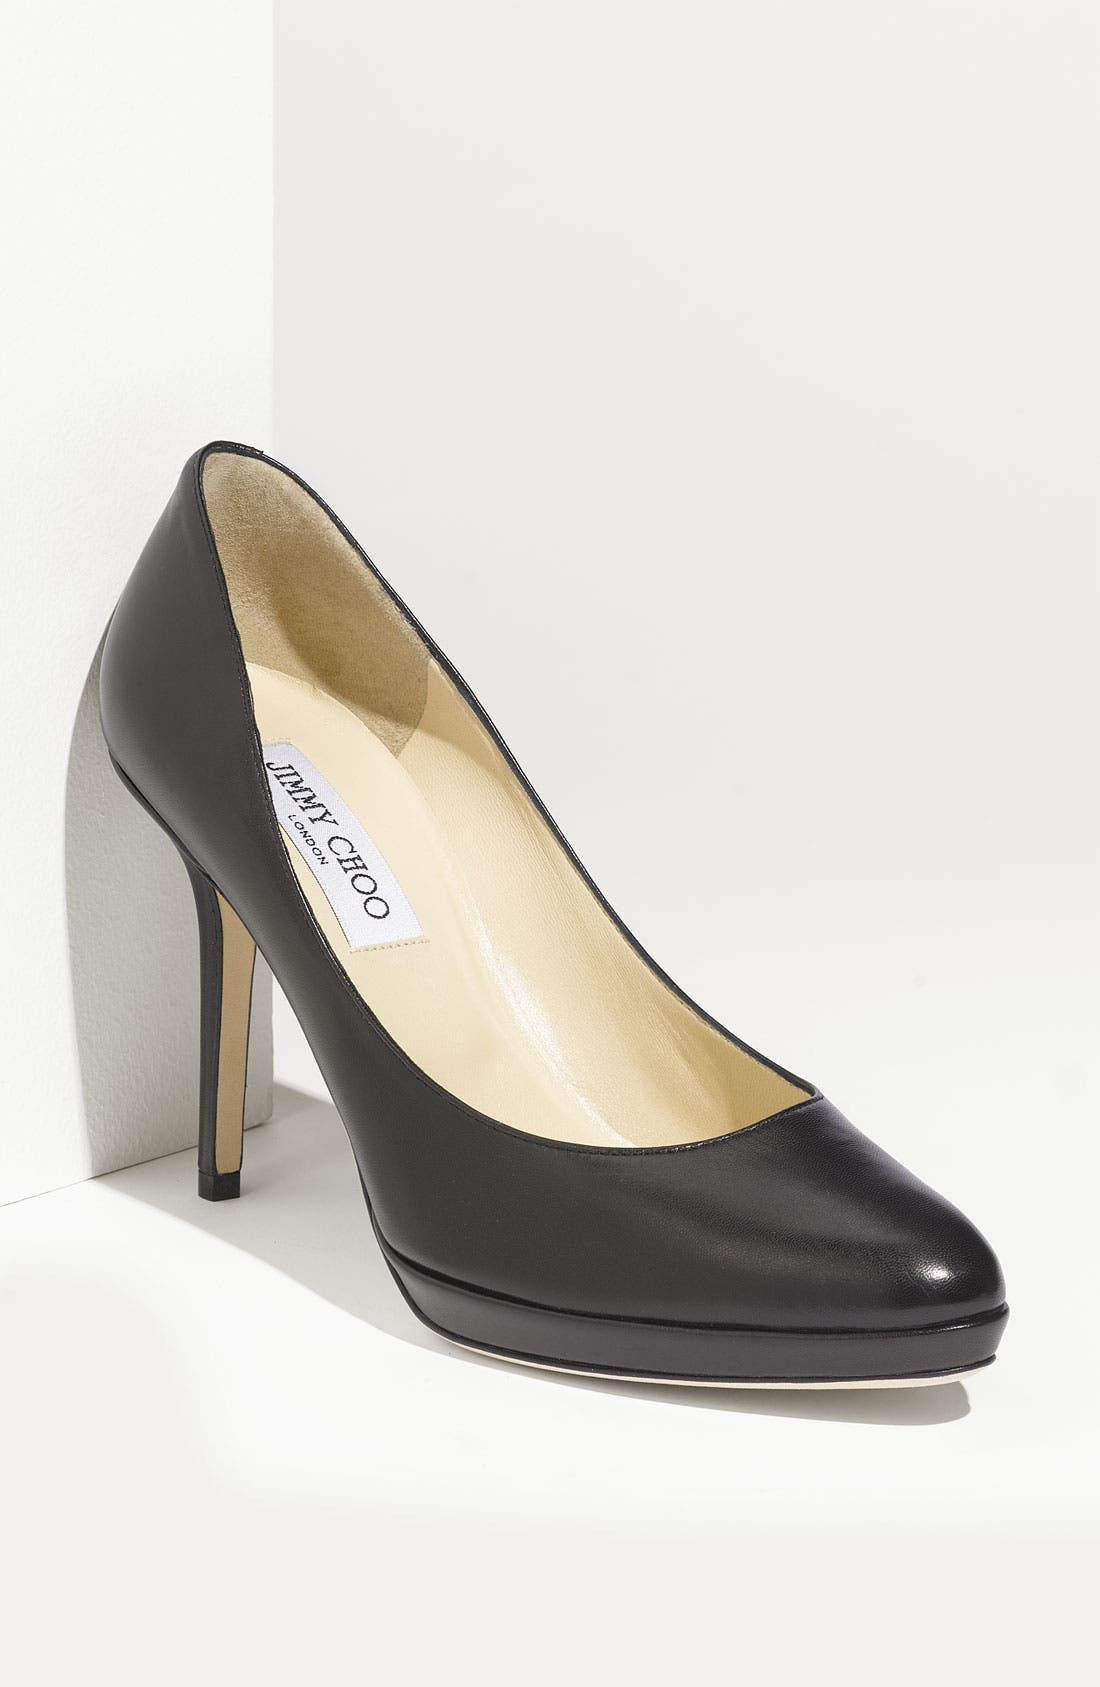 Alternate Image 1 Selected - Jimmy Choo 'Aimee' Pump